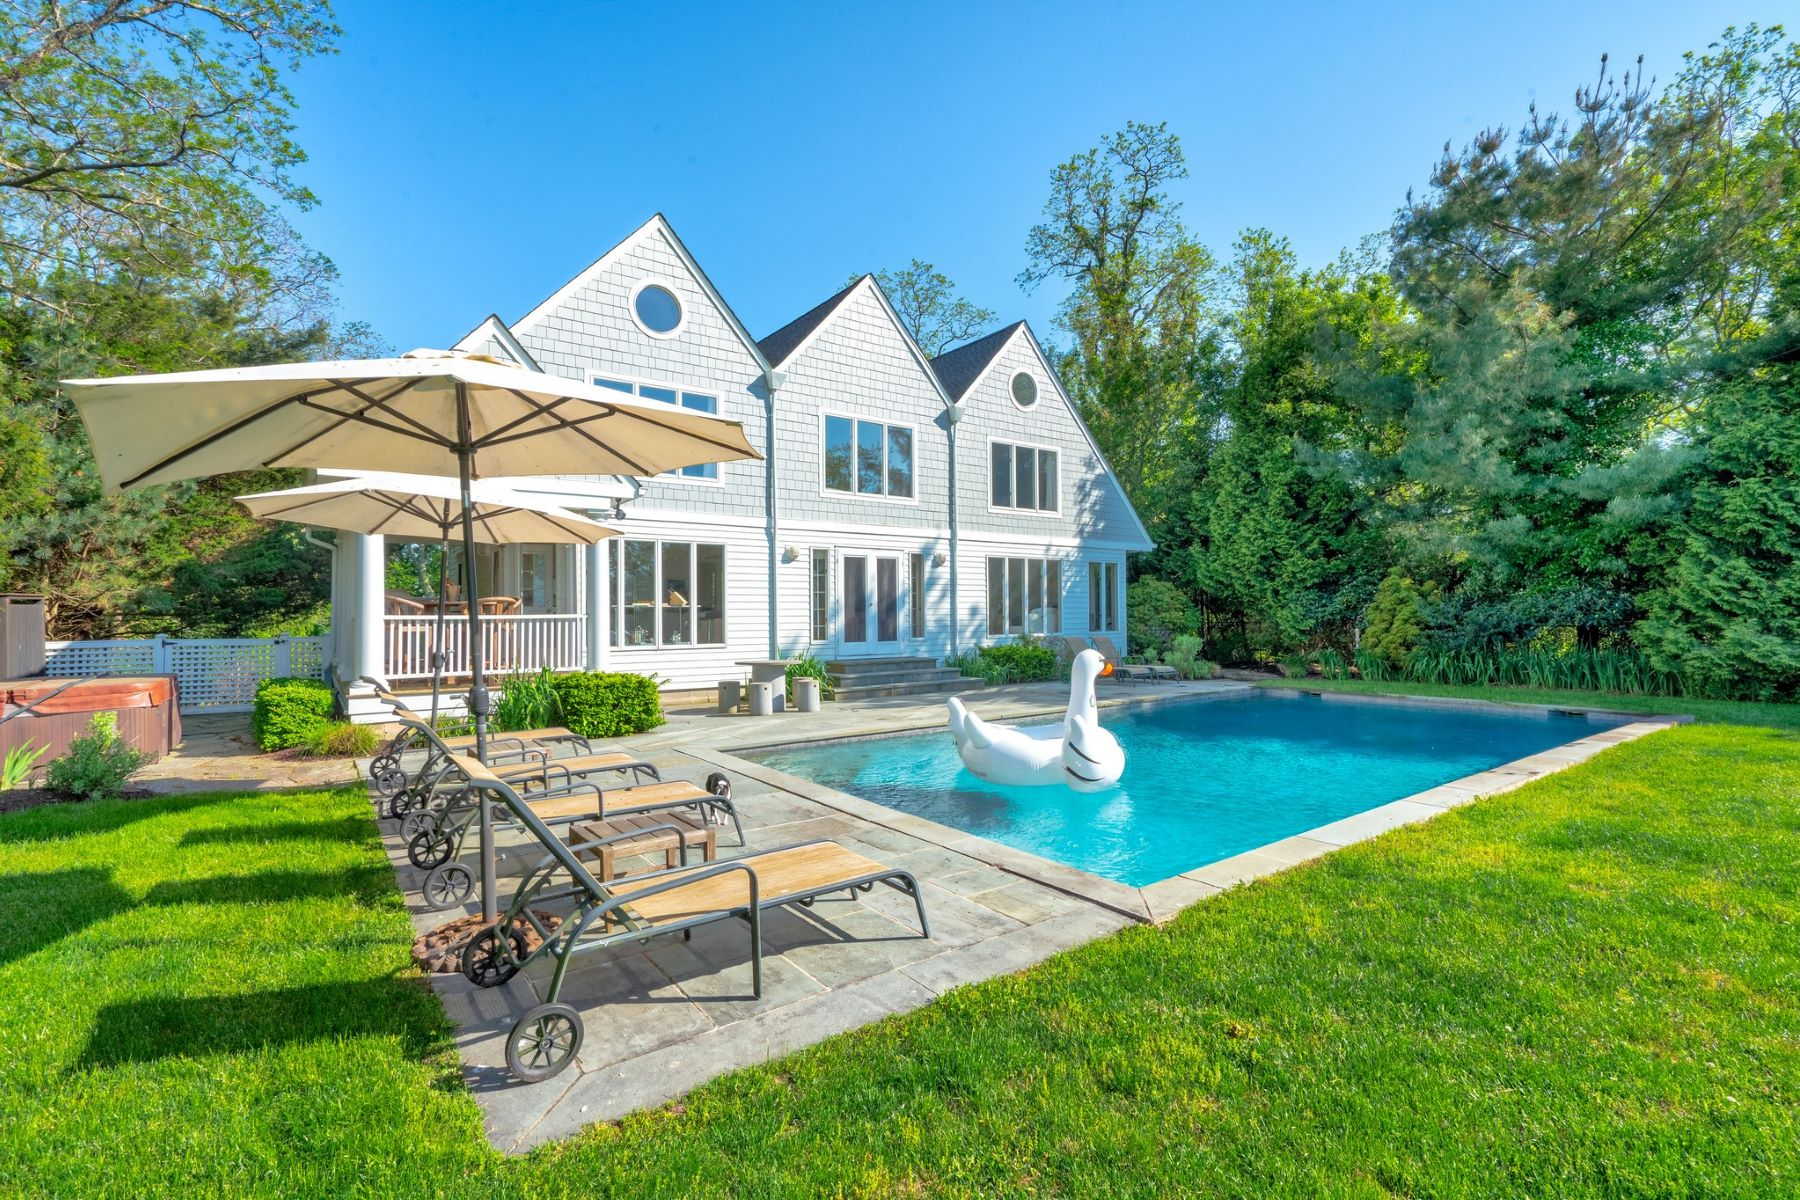 Single Family Home for Sale at 4055 Aldrich Lane Ext, ,Mattituck, New York, 1195 4055 Aldrich Lane Ext Mattituck, New York 11952 United States